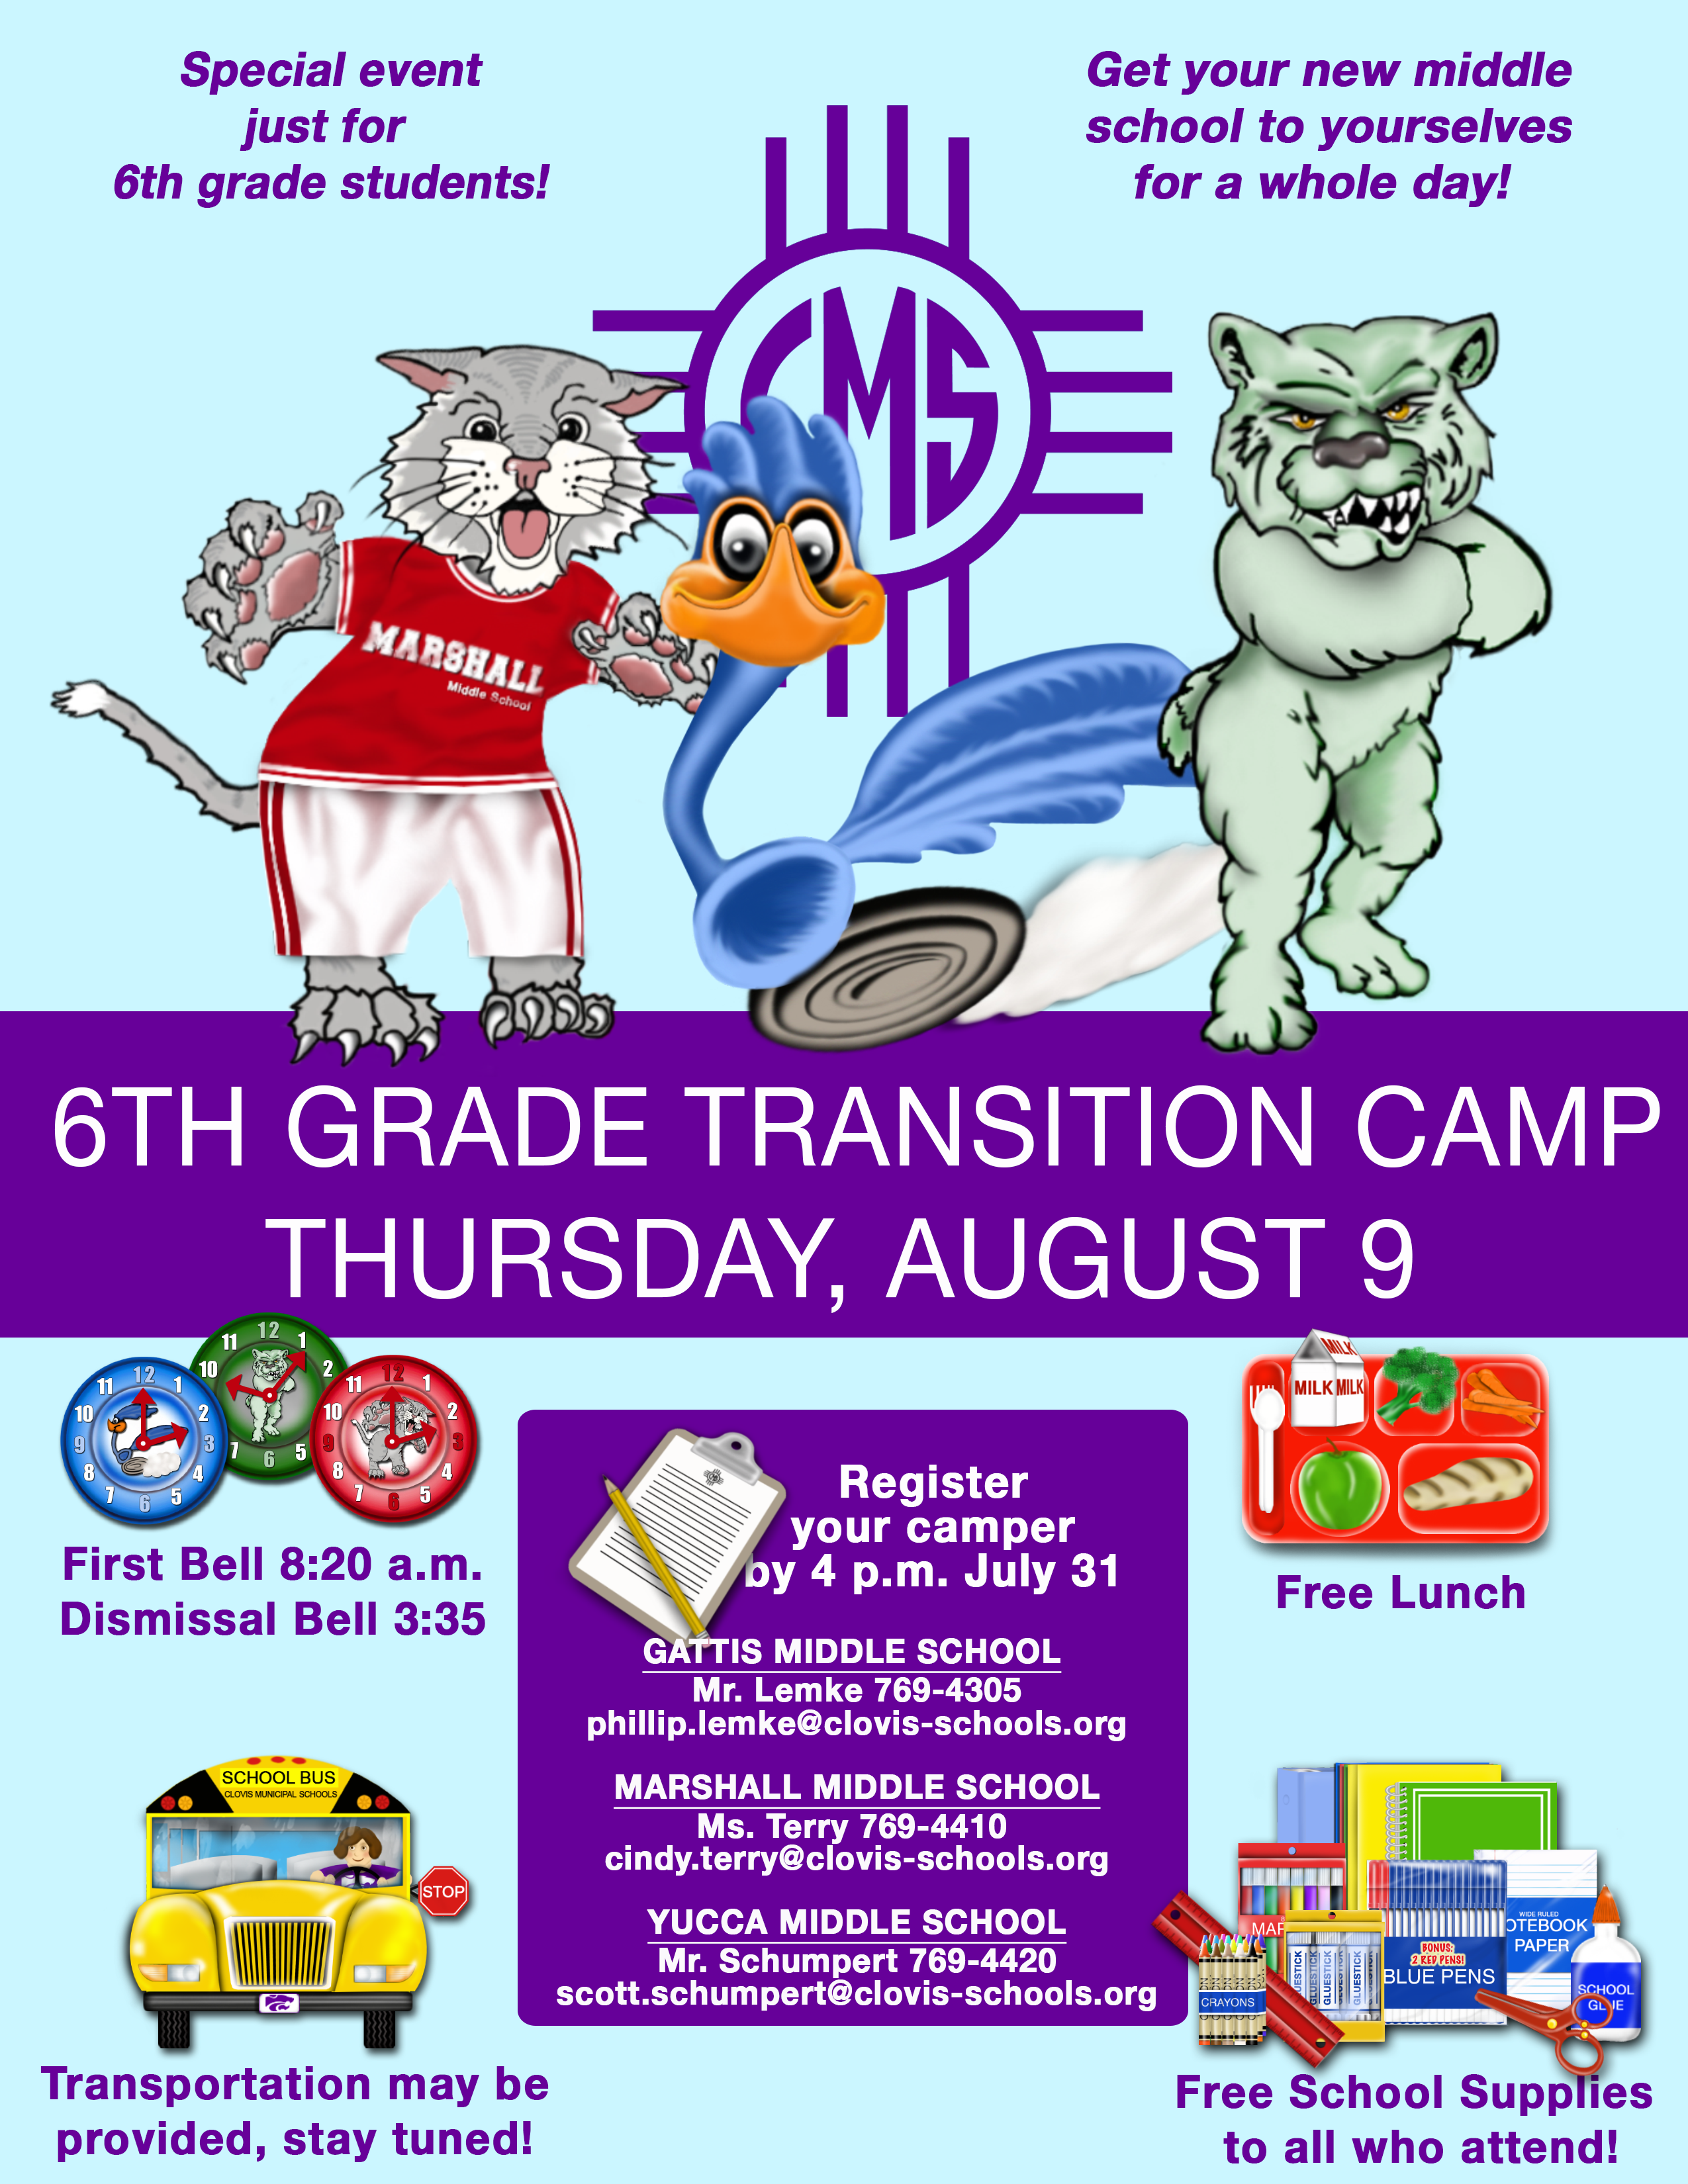 Image with text announcing 6th grade transition camp